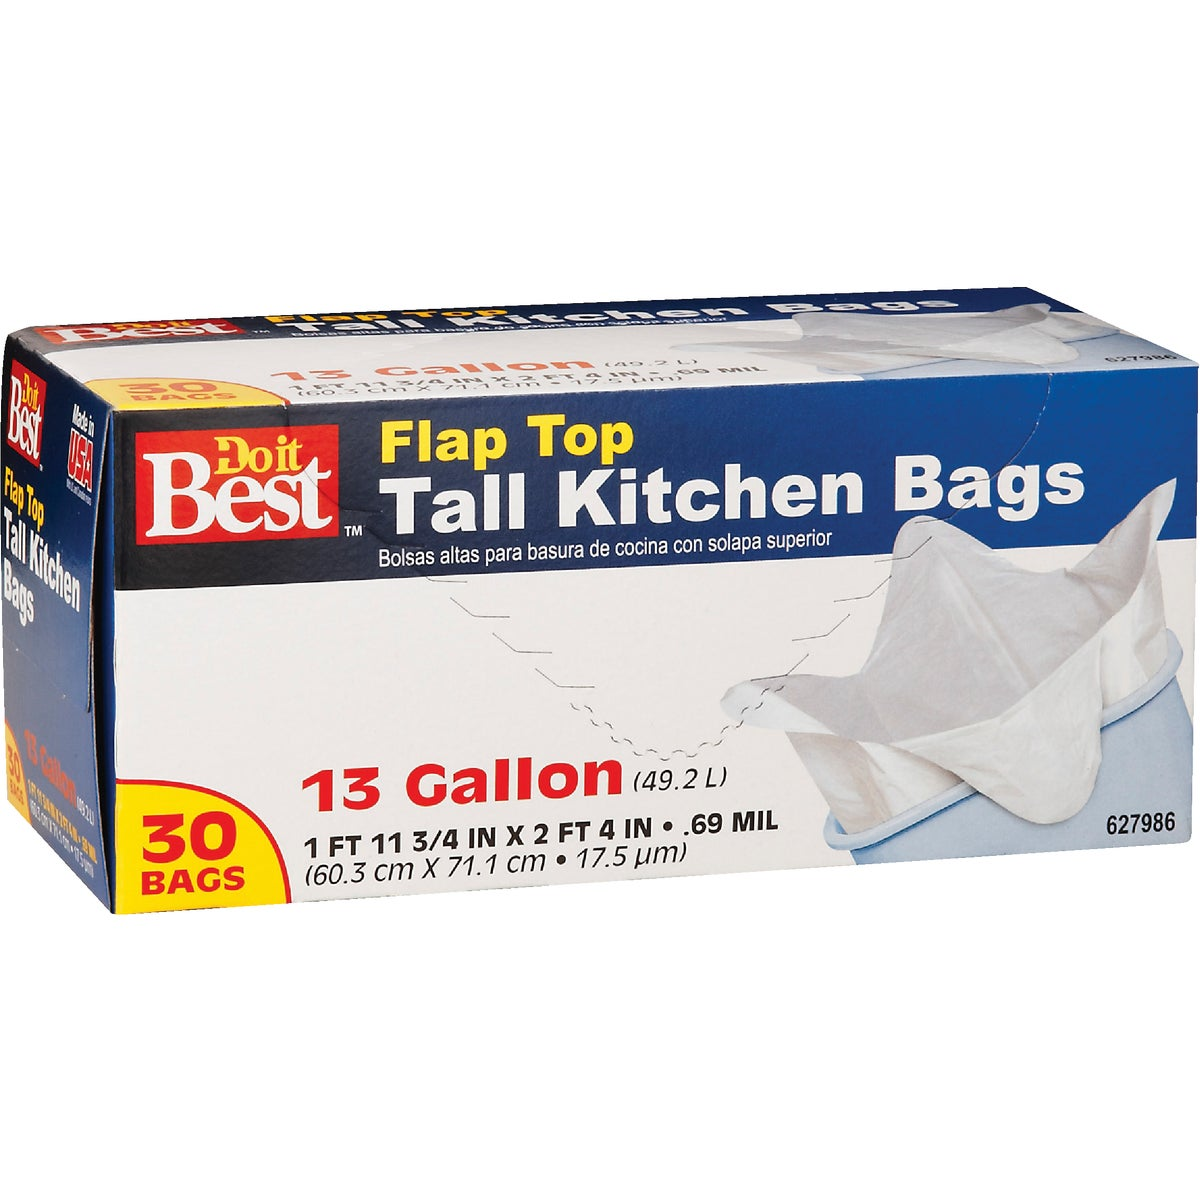 30CT 13GAL KITCHEN BAG - 627986 by Presto Products